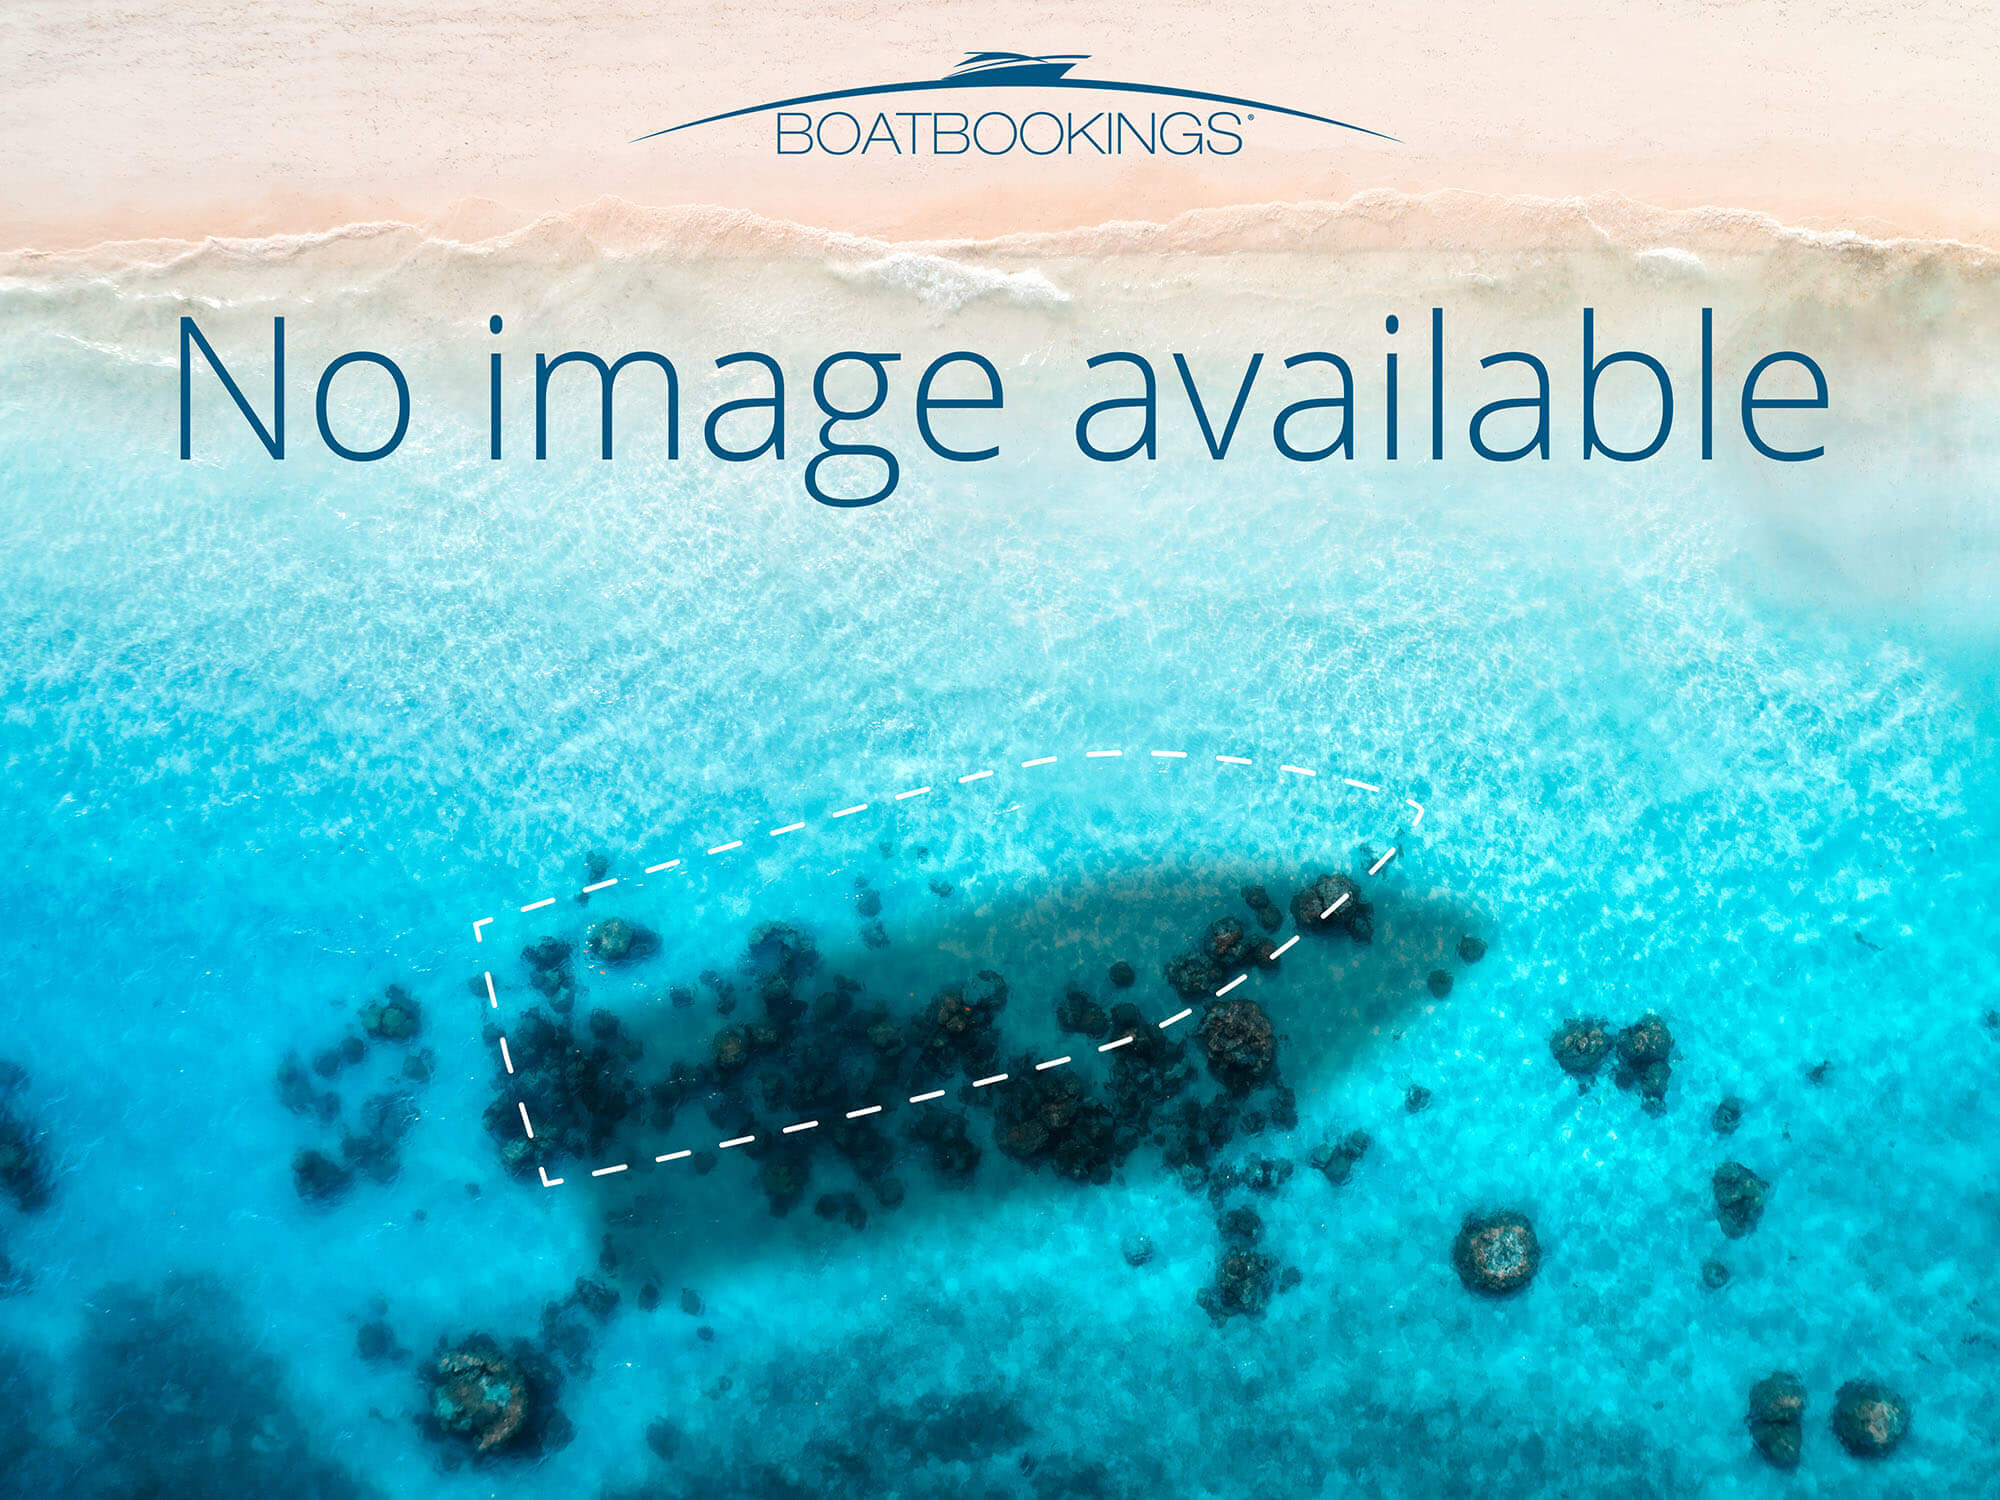 FREEDOM is a Nautitech 46 Catamaran with Flybridge based in the Windward Islands operating charters between Grenada and Antigua. The sailing catamran offers three guest cabins(for 6 guests). The starboard aft cabin has en-suite heads and separate sta